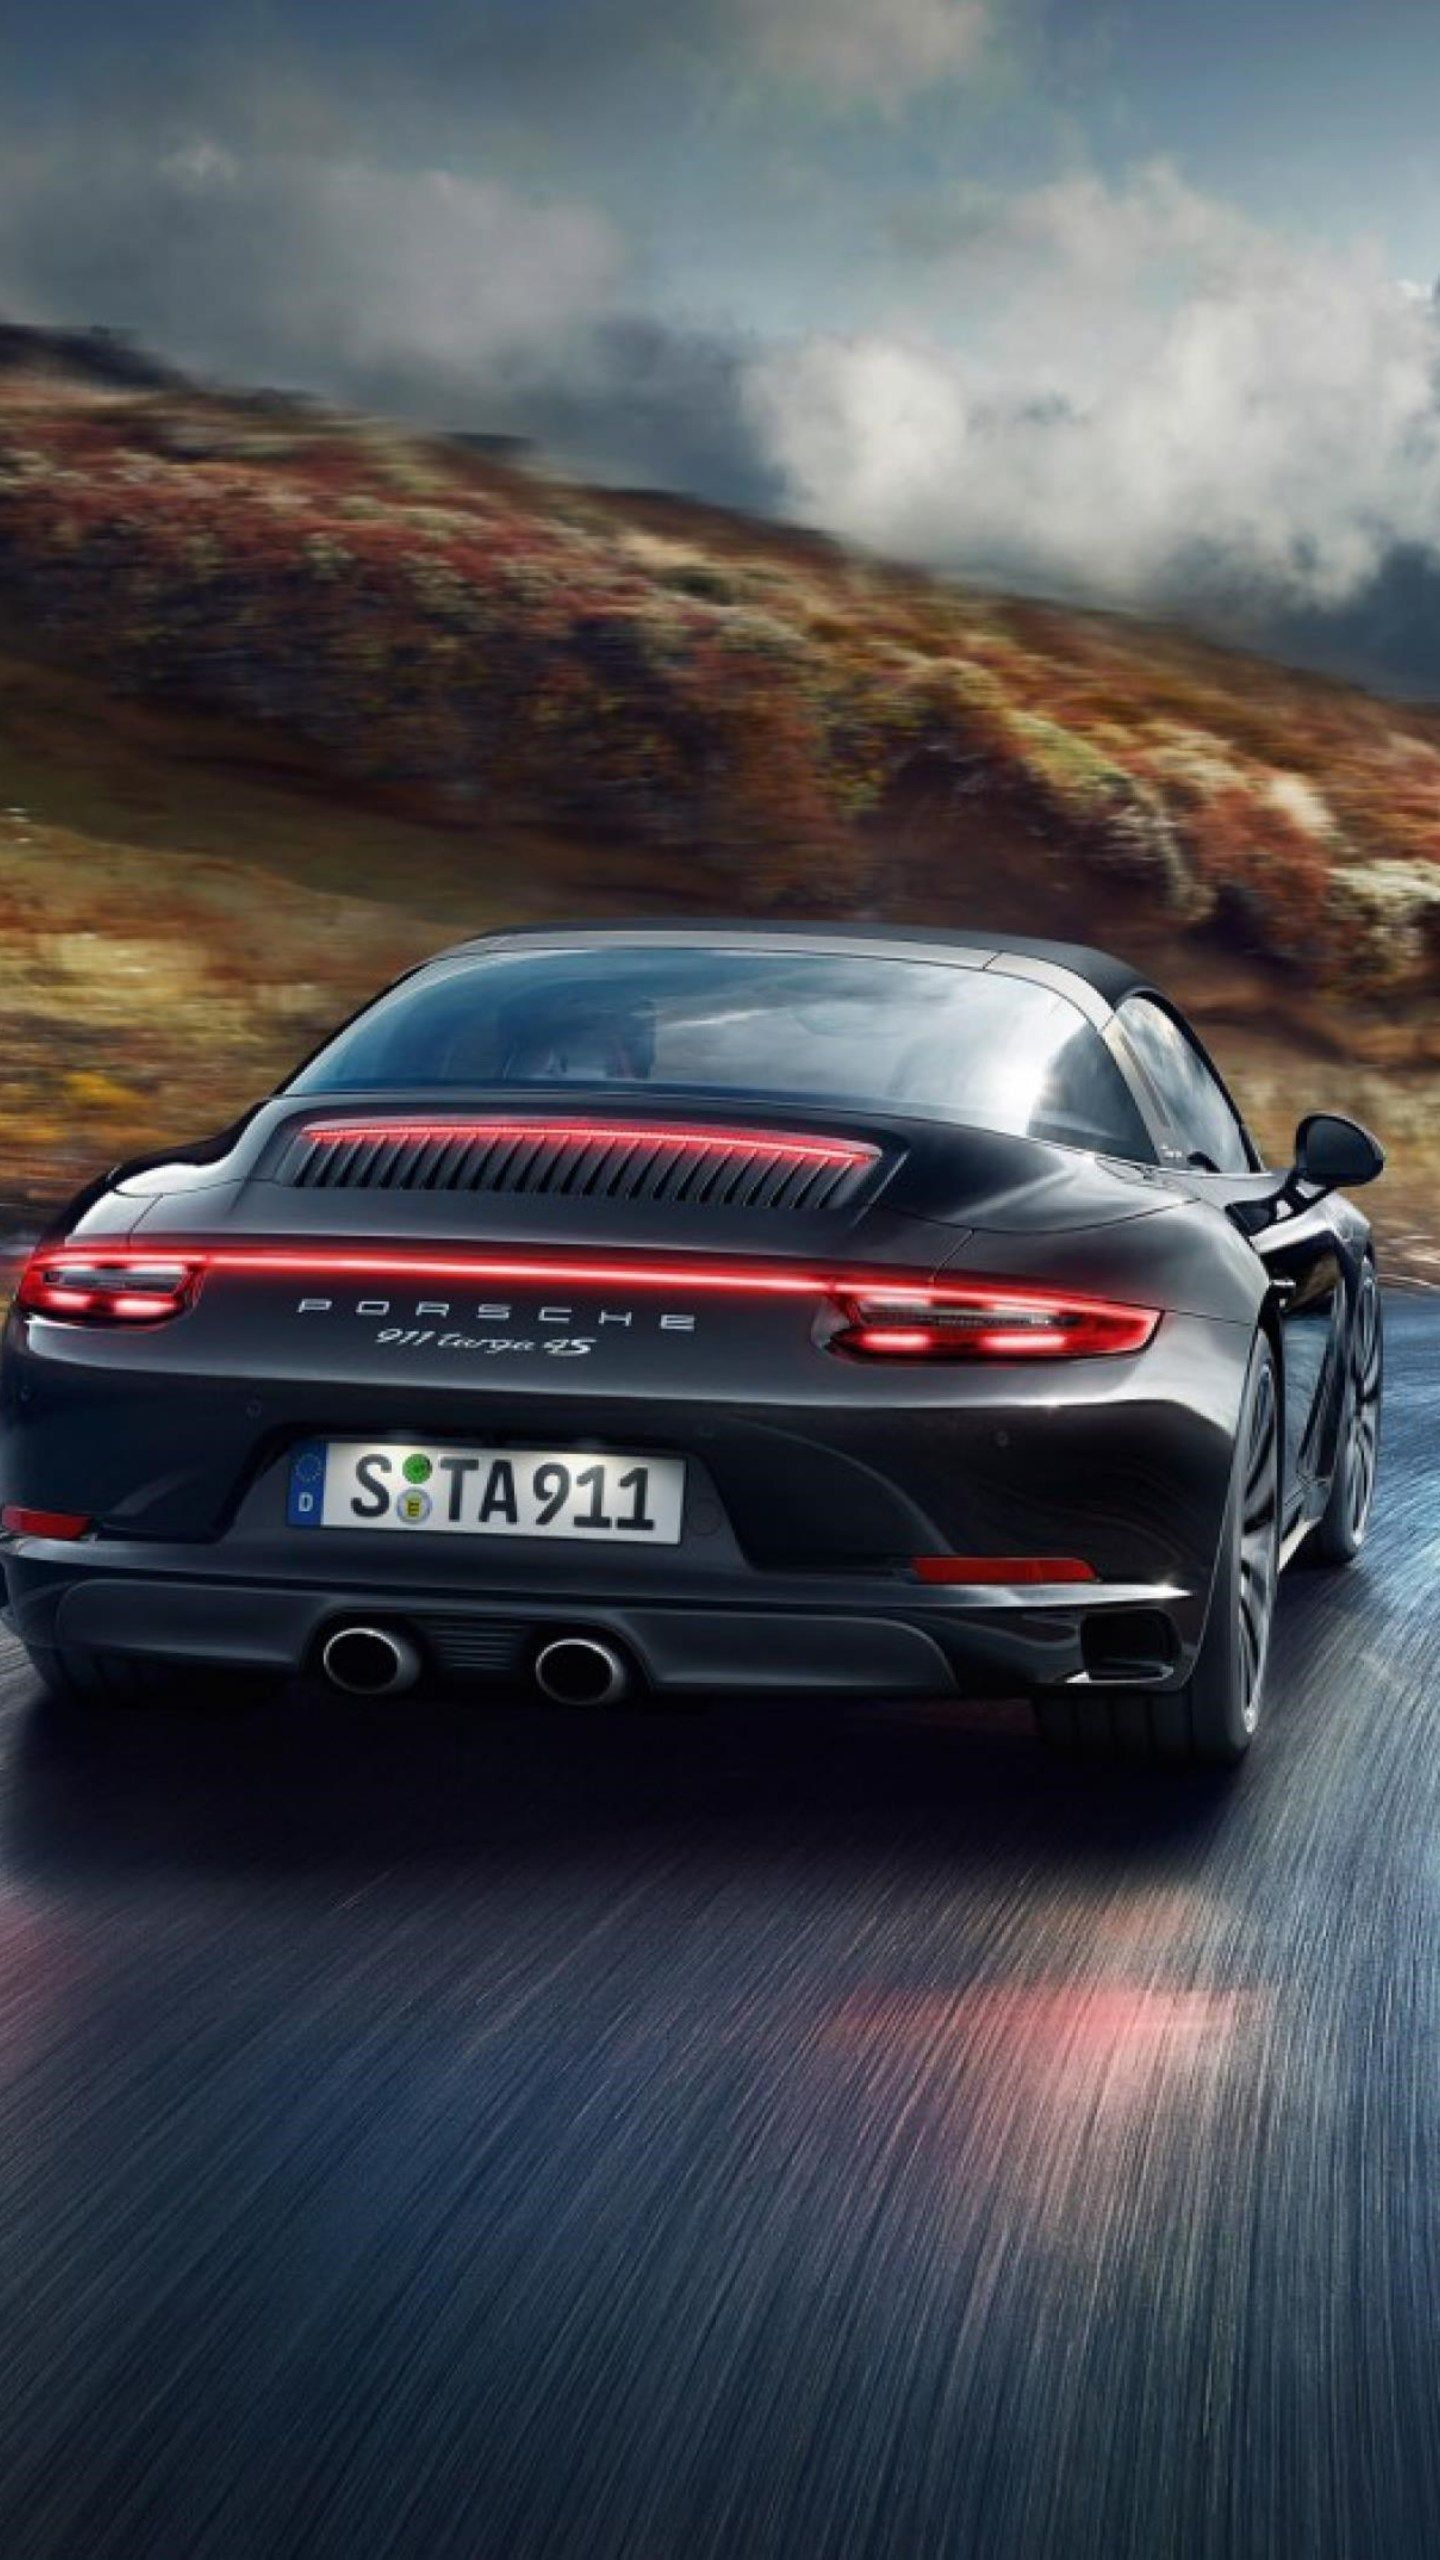 Car Wallpaper 8 Porsche 911 Targa Porsche Porsche Cars